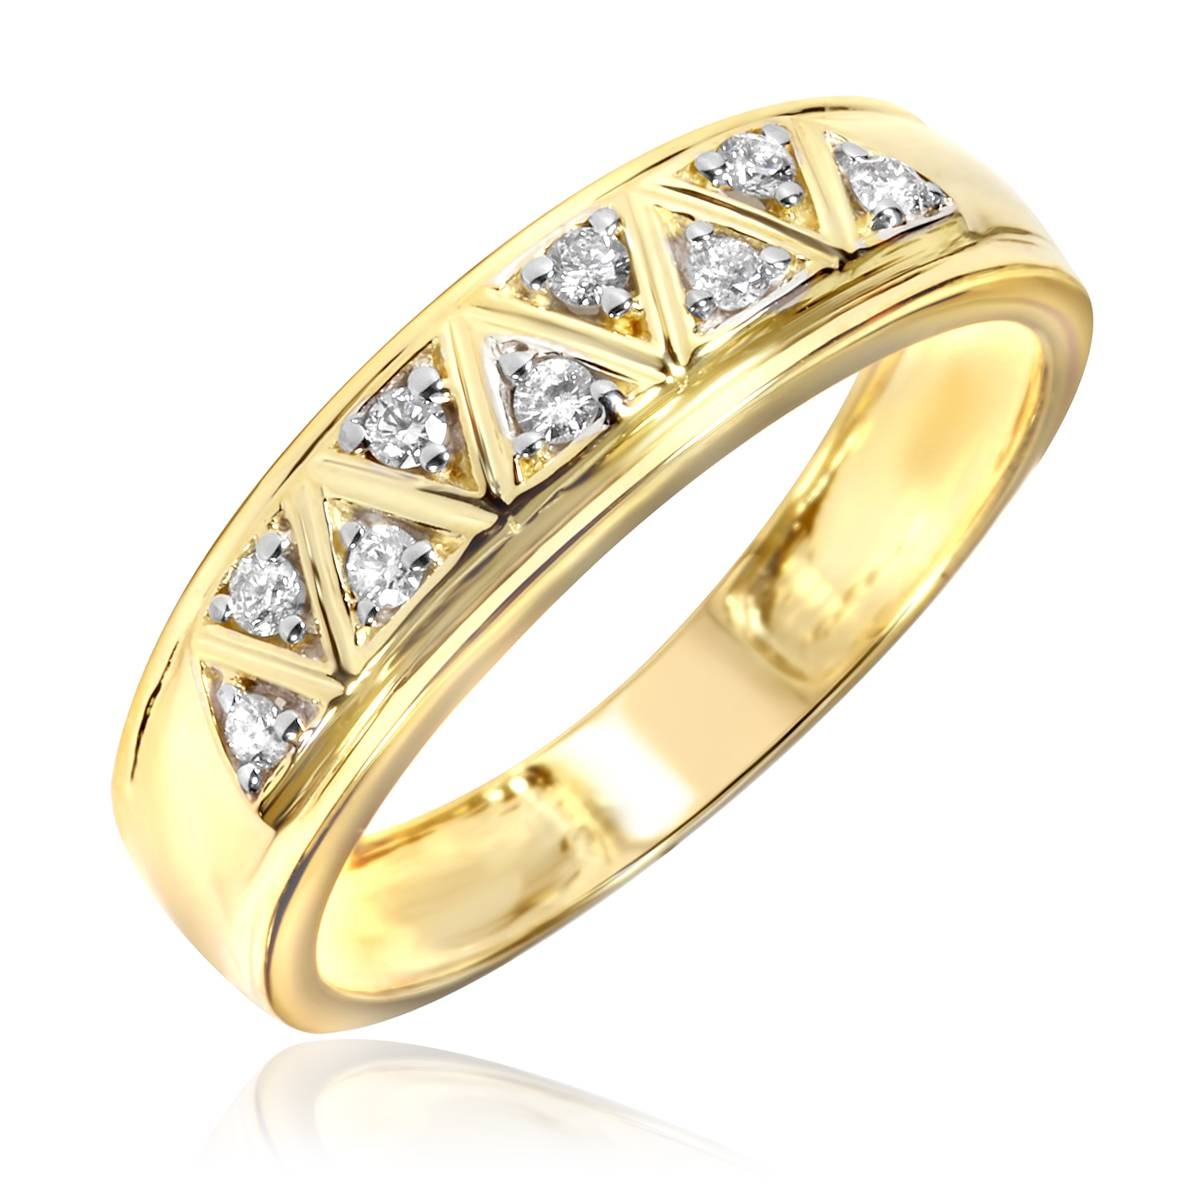 1/5 Carat T.w. Diamond Men's Wedding Ring 10K Yellow Gold Intended For Mens Yellow Gold Wedding Bands With Diamonds (Gallery 14 of 15)